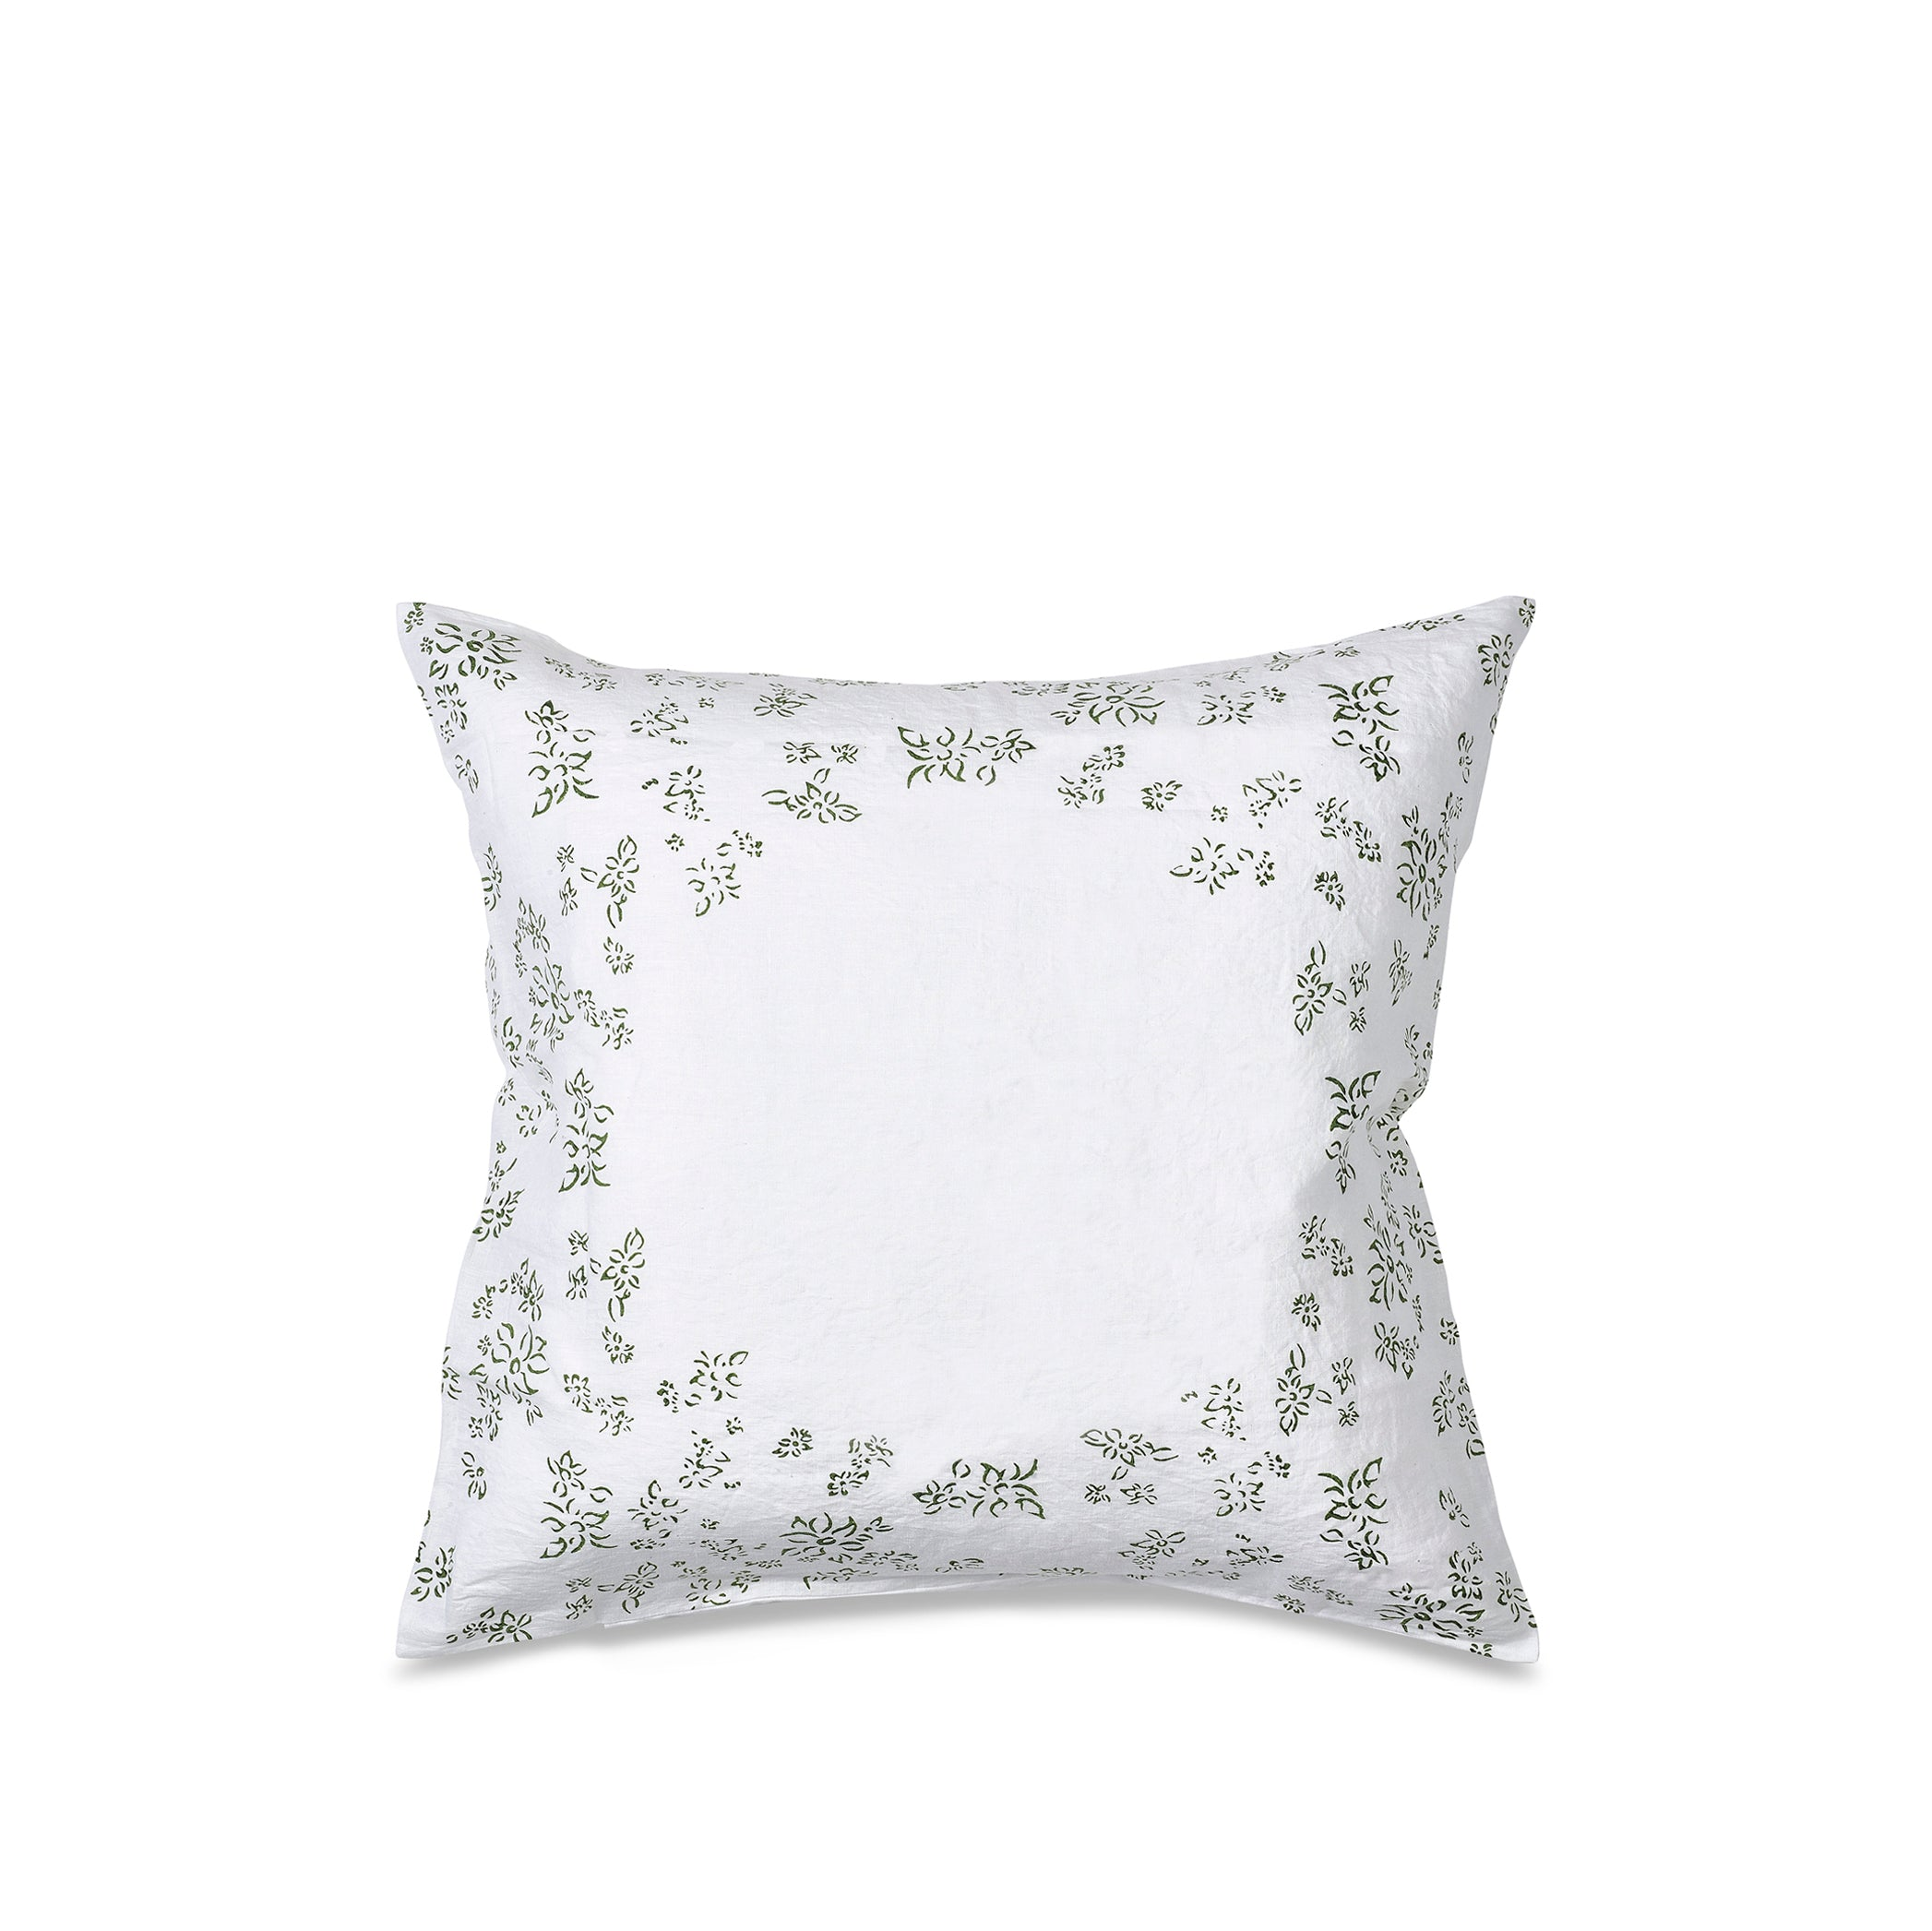 """Bernadette's Falling Flower"" Linen Square Pillowcase in Avocado Green"